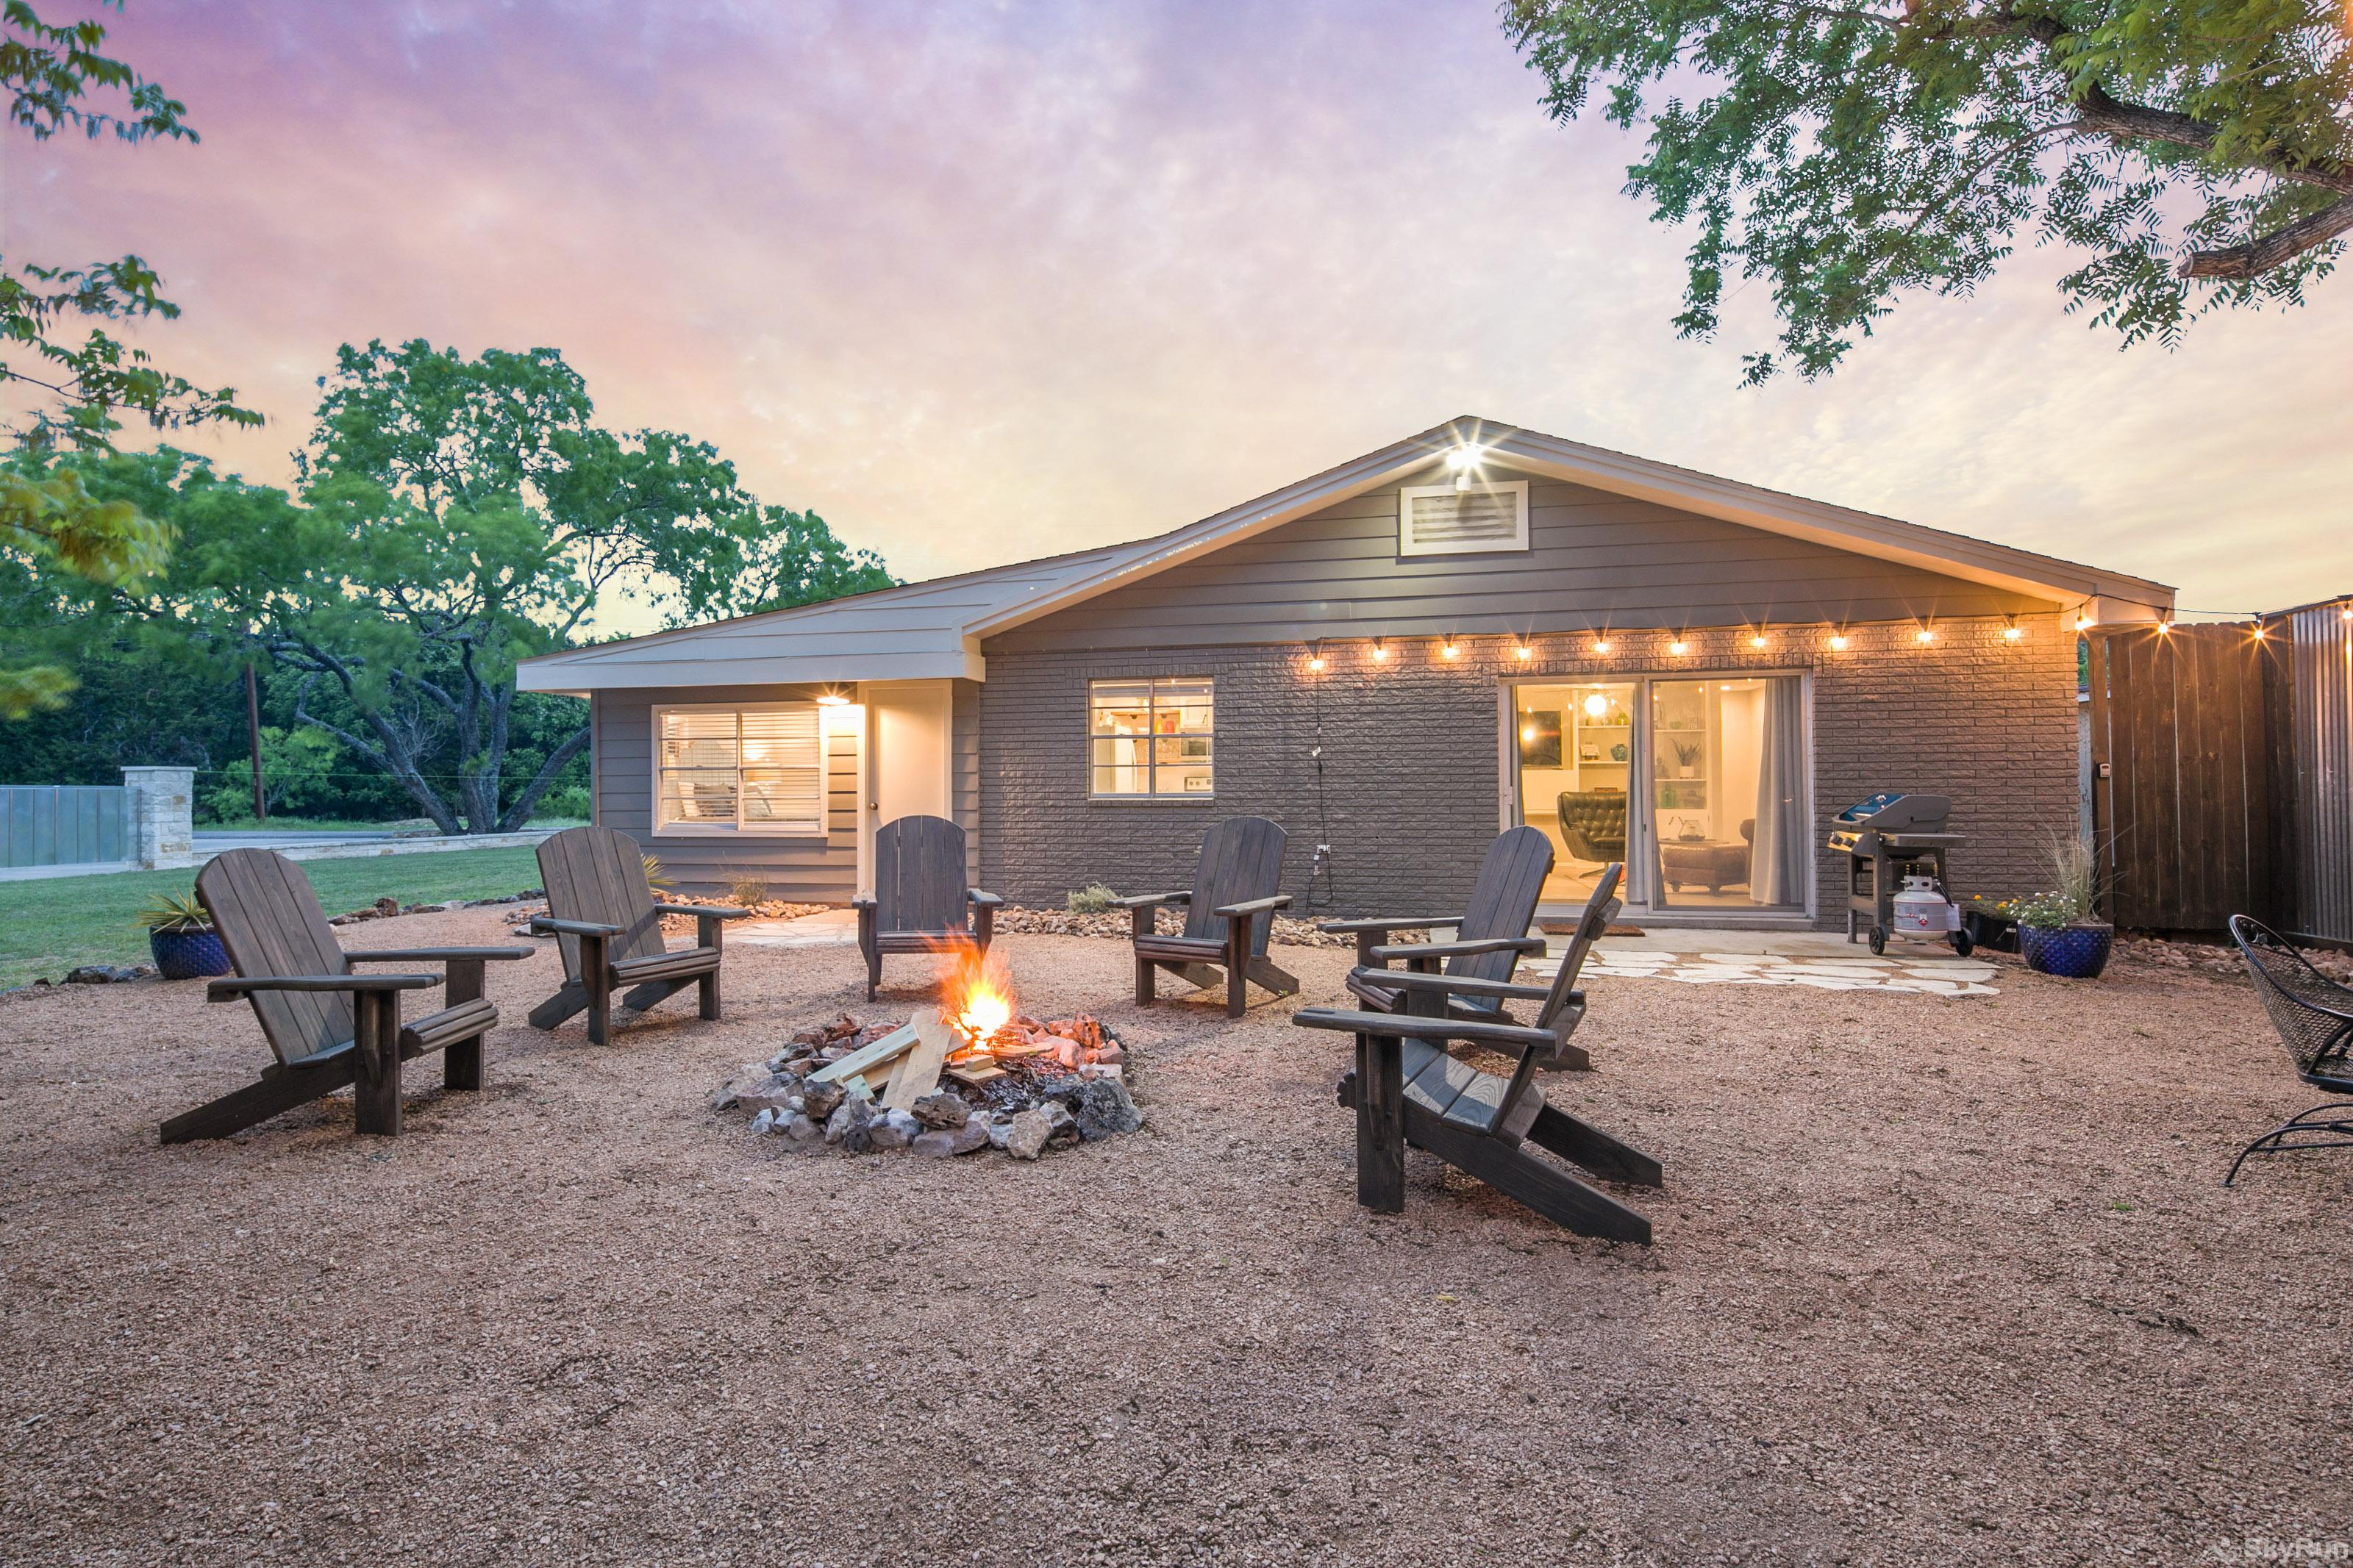 RIVER ROSE Backyard seating and campfire area